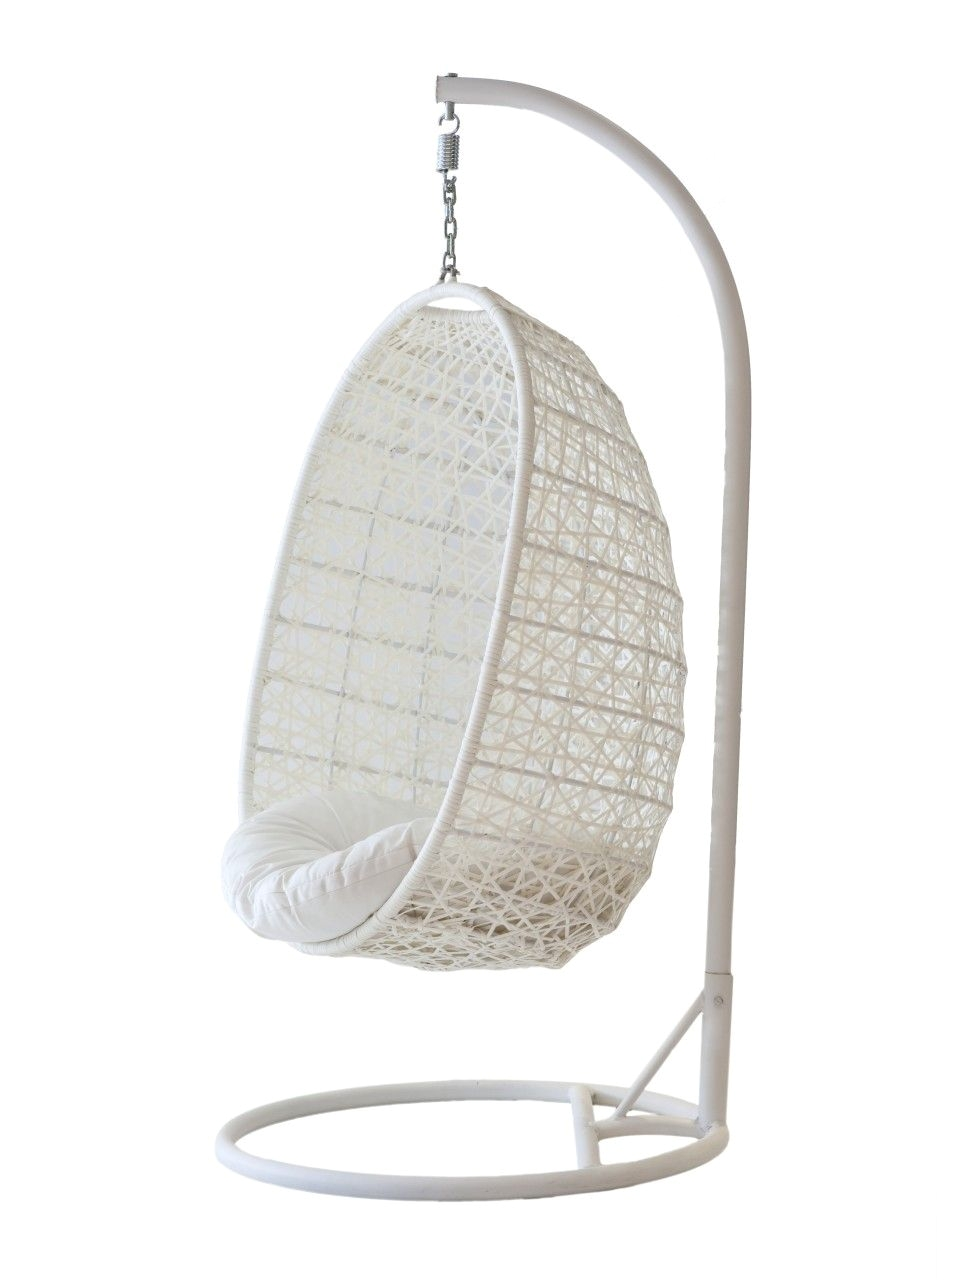 teardrop swing chair blue cover hire with stand affordable hanging for bedroom ikea cool chairs